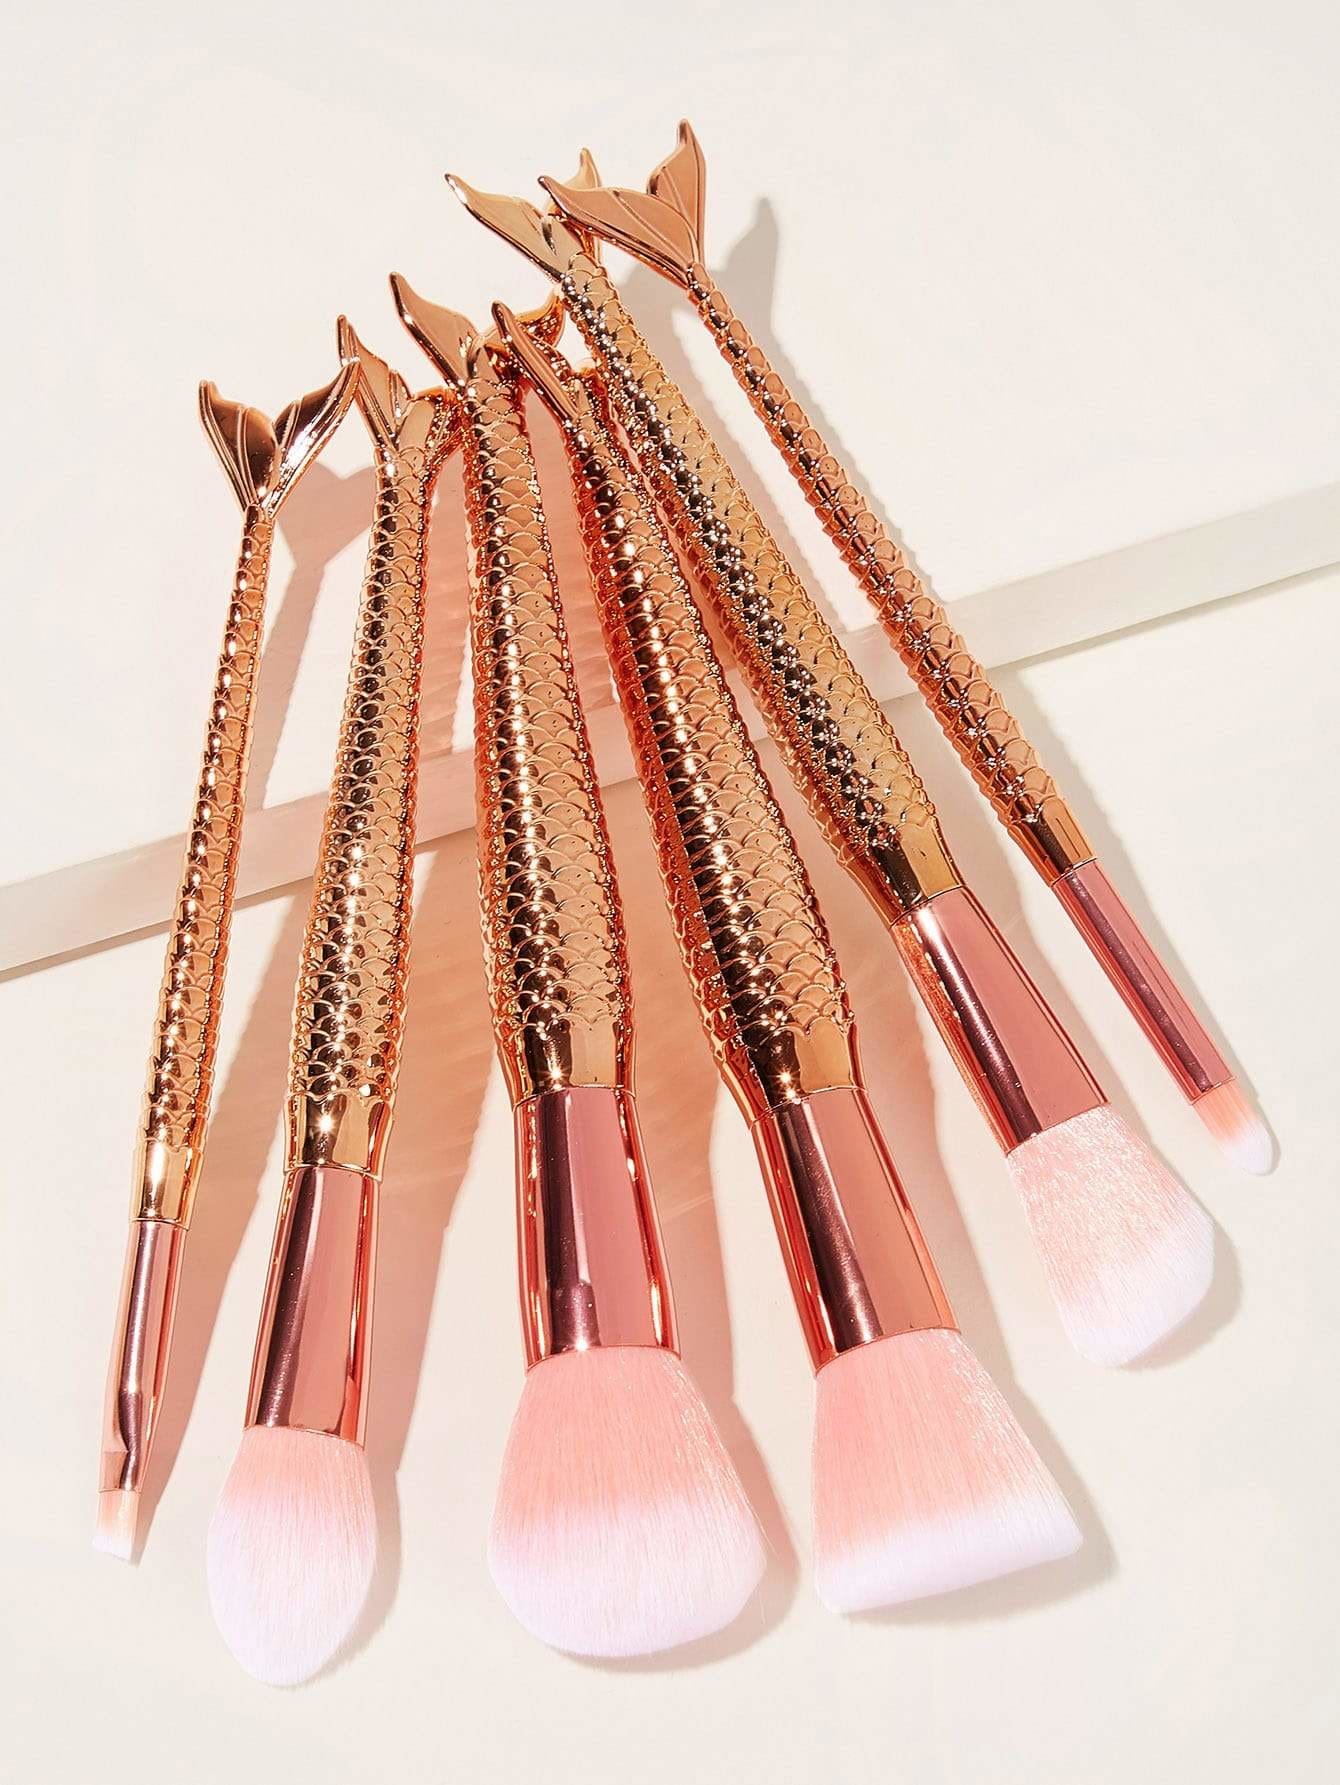 Mermaid Handle Makeup Brush 6pcs